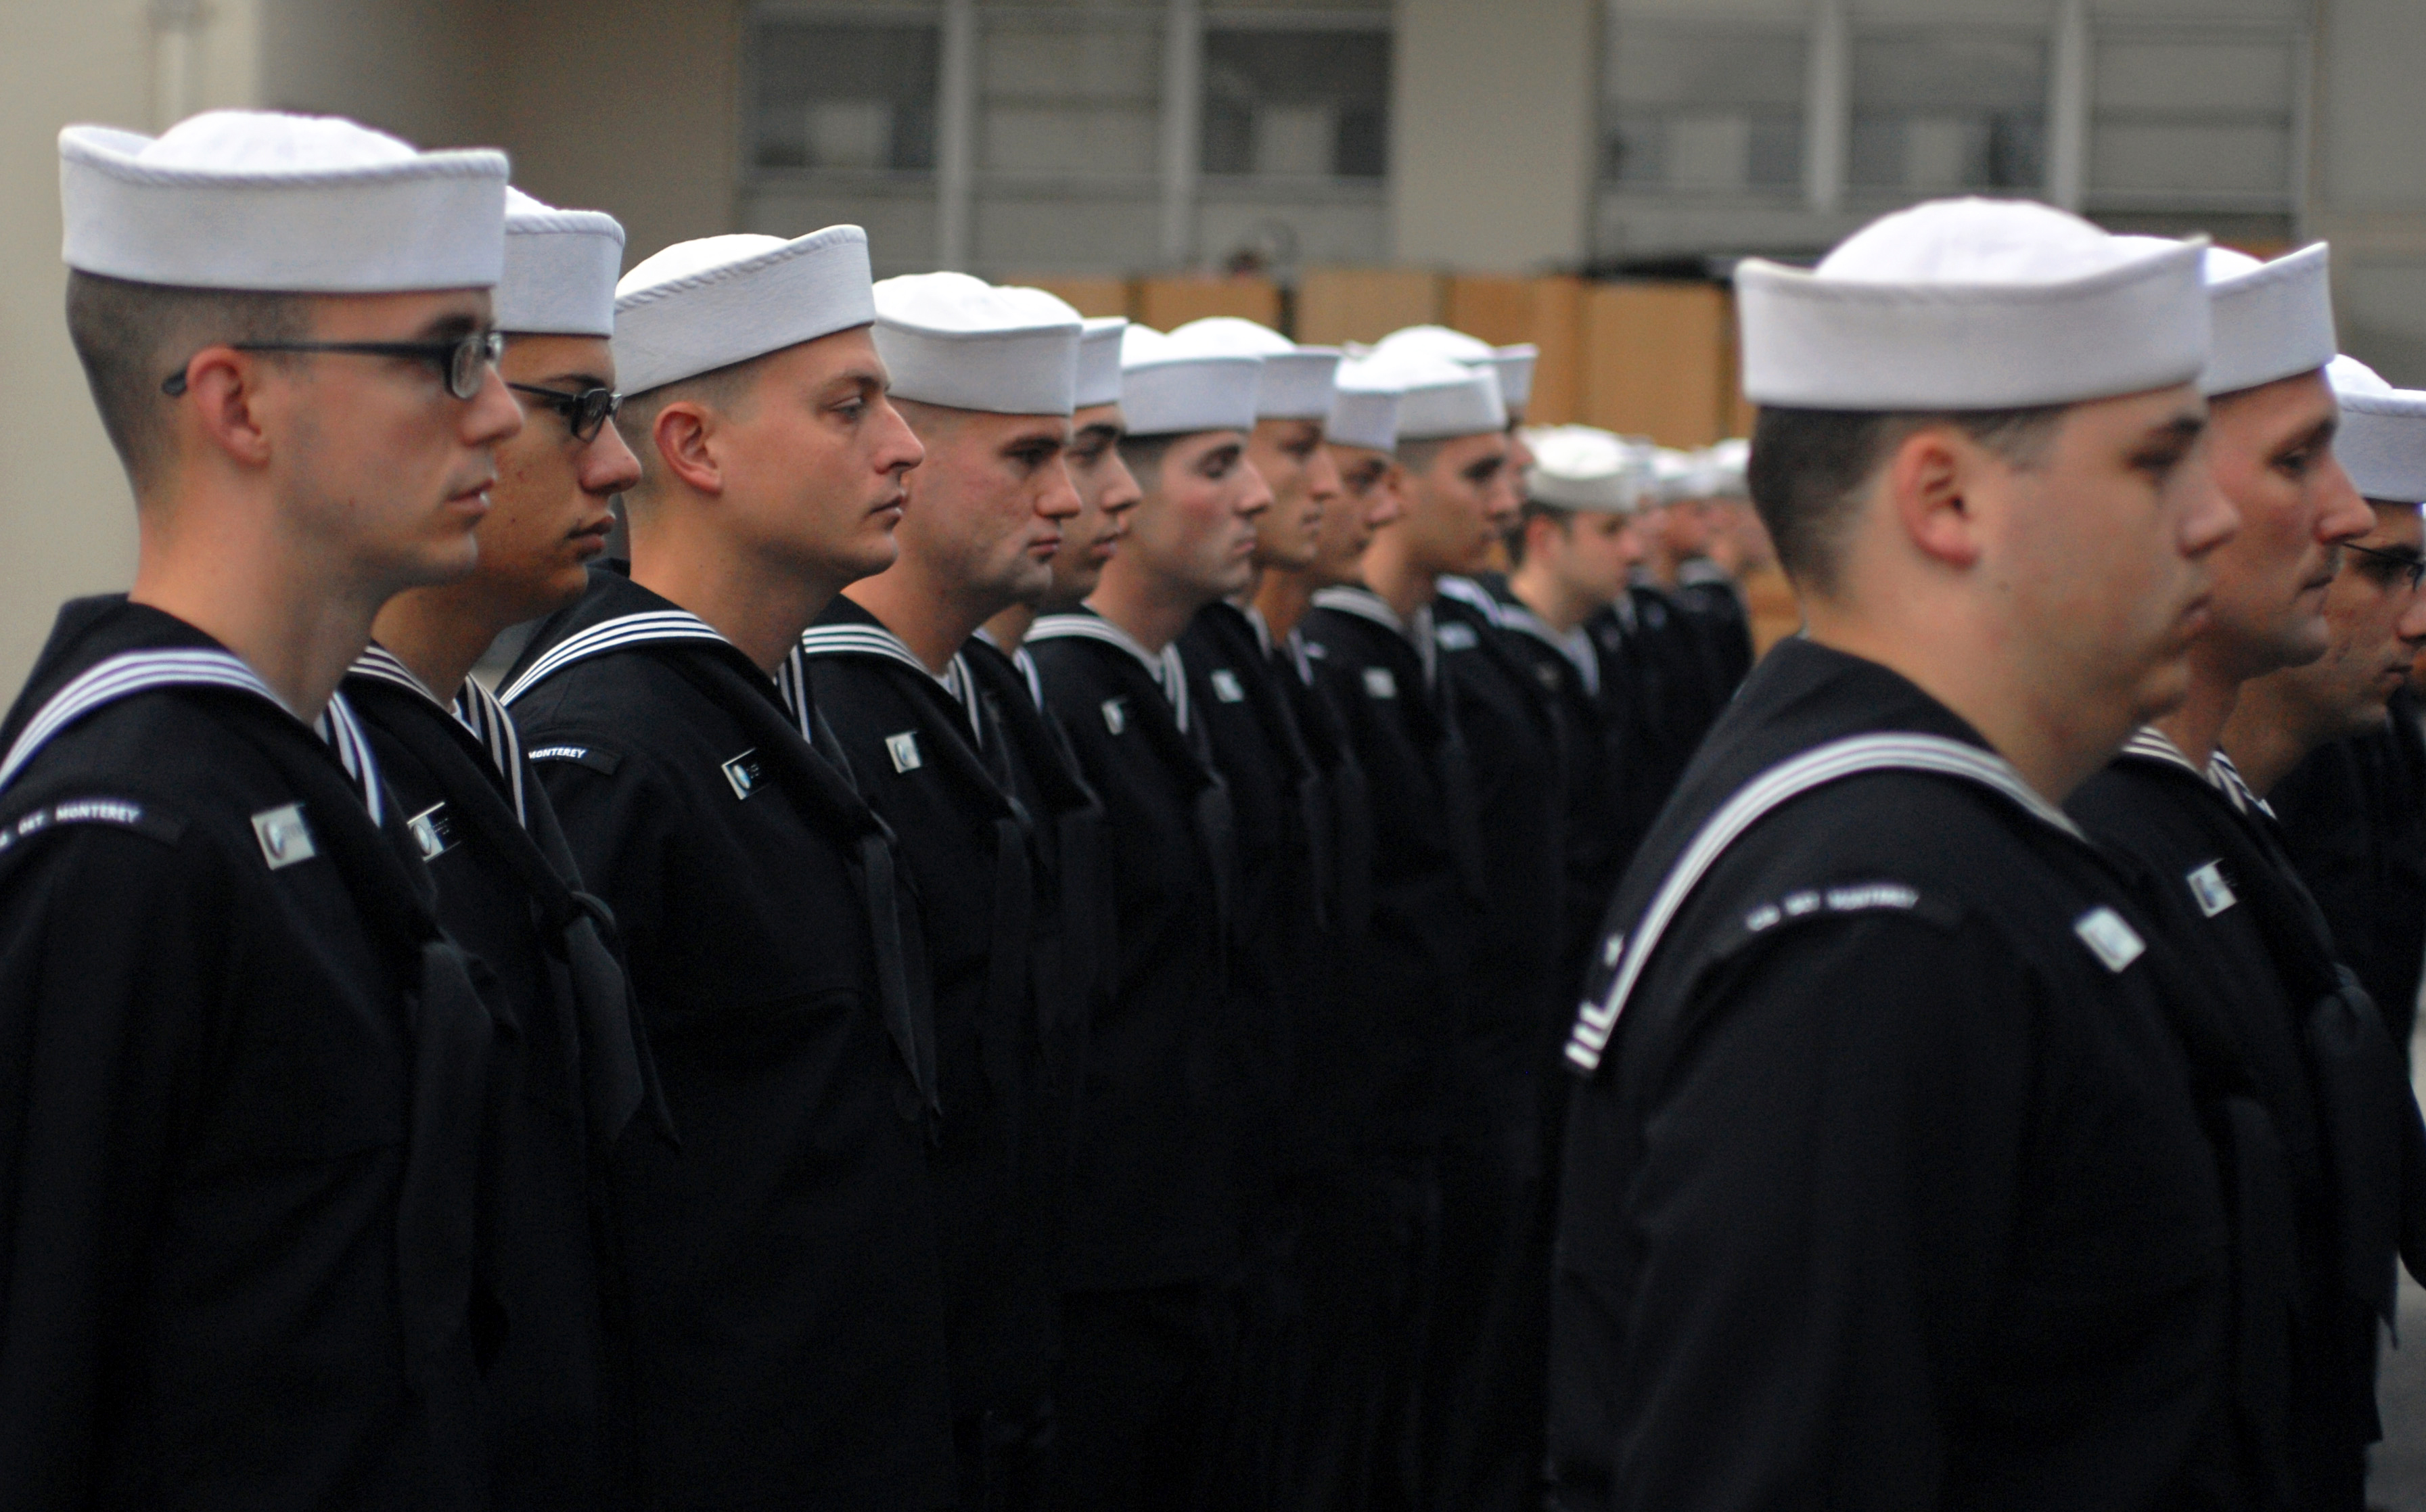 ... while waiting to be inspected in their service dress blue uniform.jpg